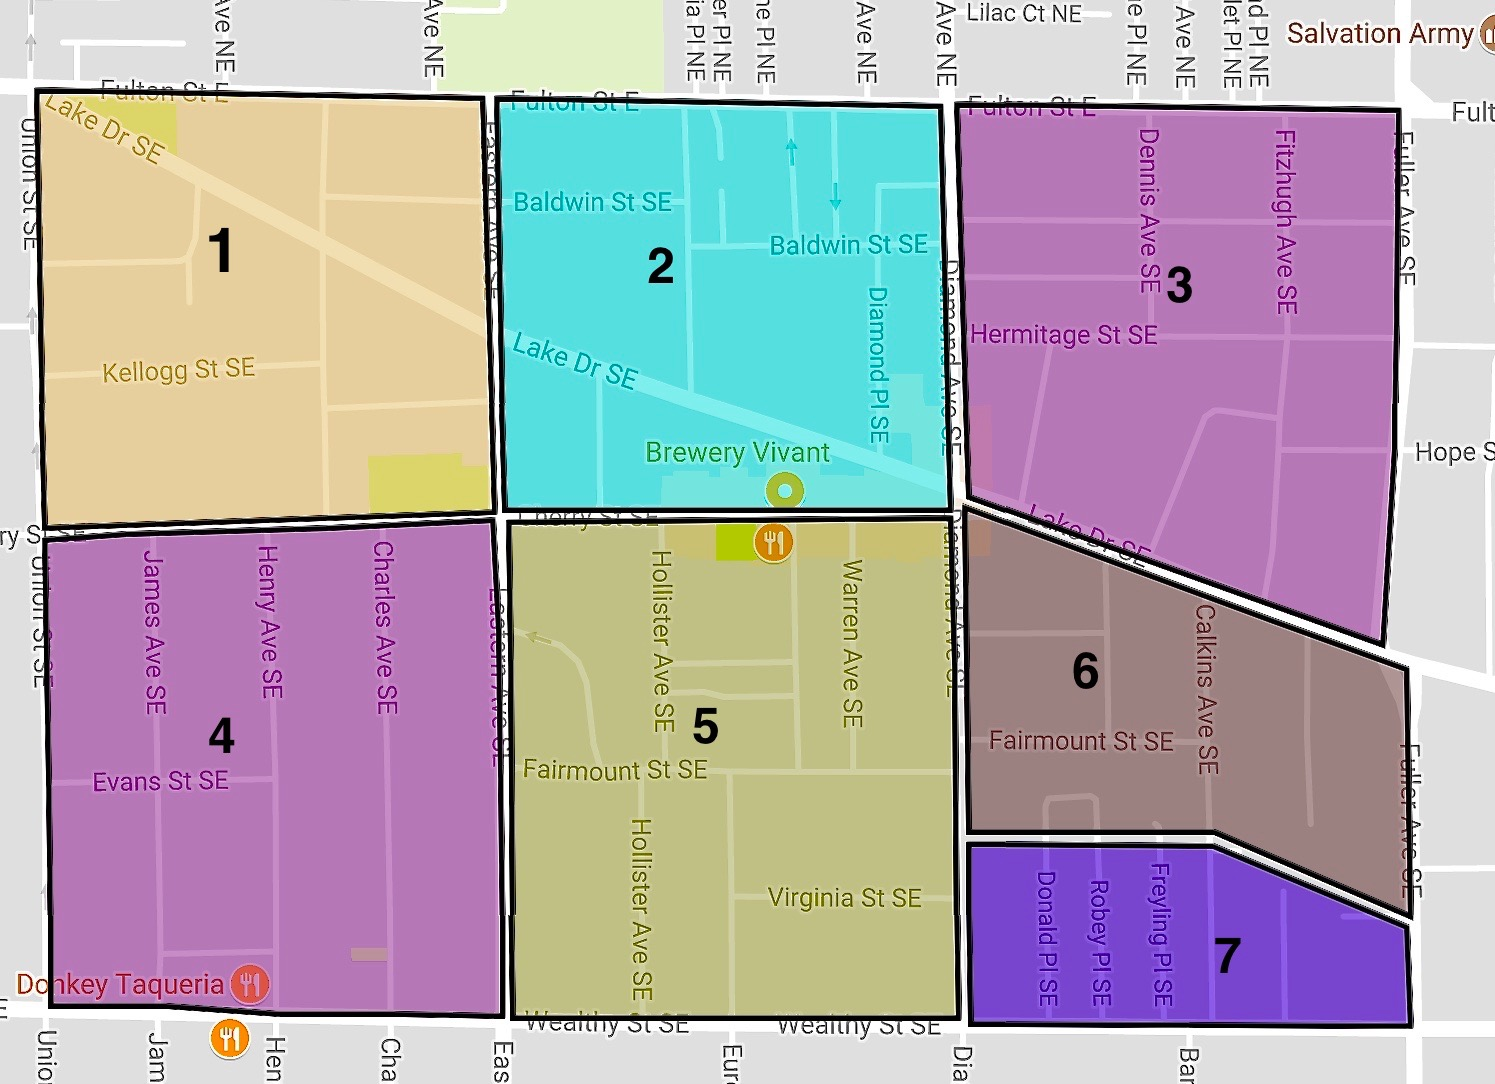 Sub Neighborhood Map - 1. Fitch Corners2. Congress Park3. Diamond Gate4. Cherry Hill5. Fairmount Square6. Orchard Hill7. Wealthy Heights